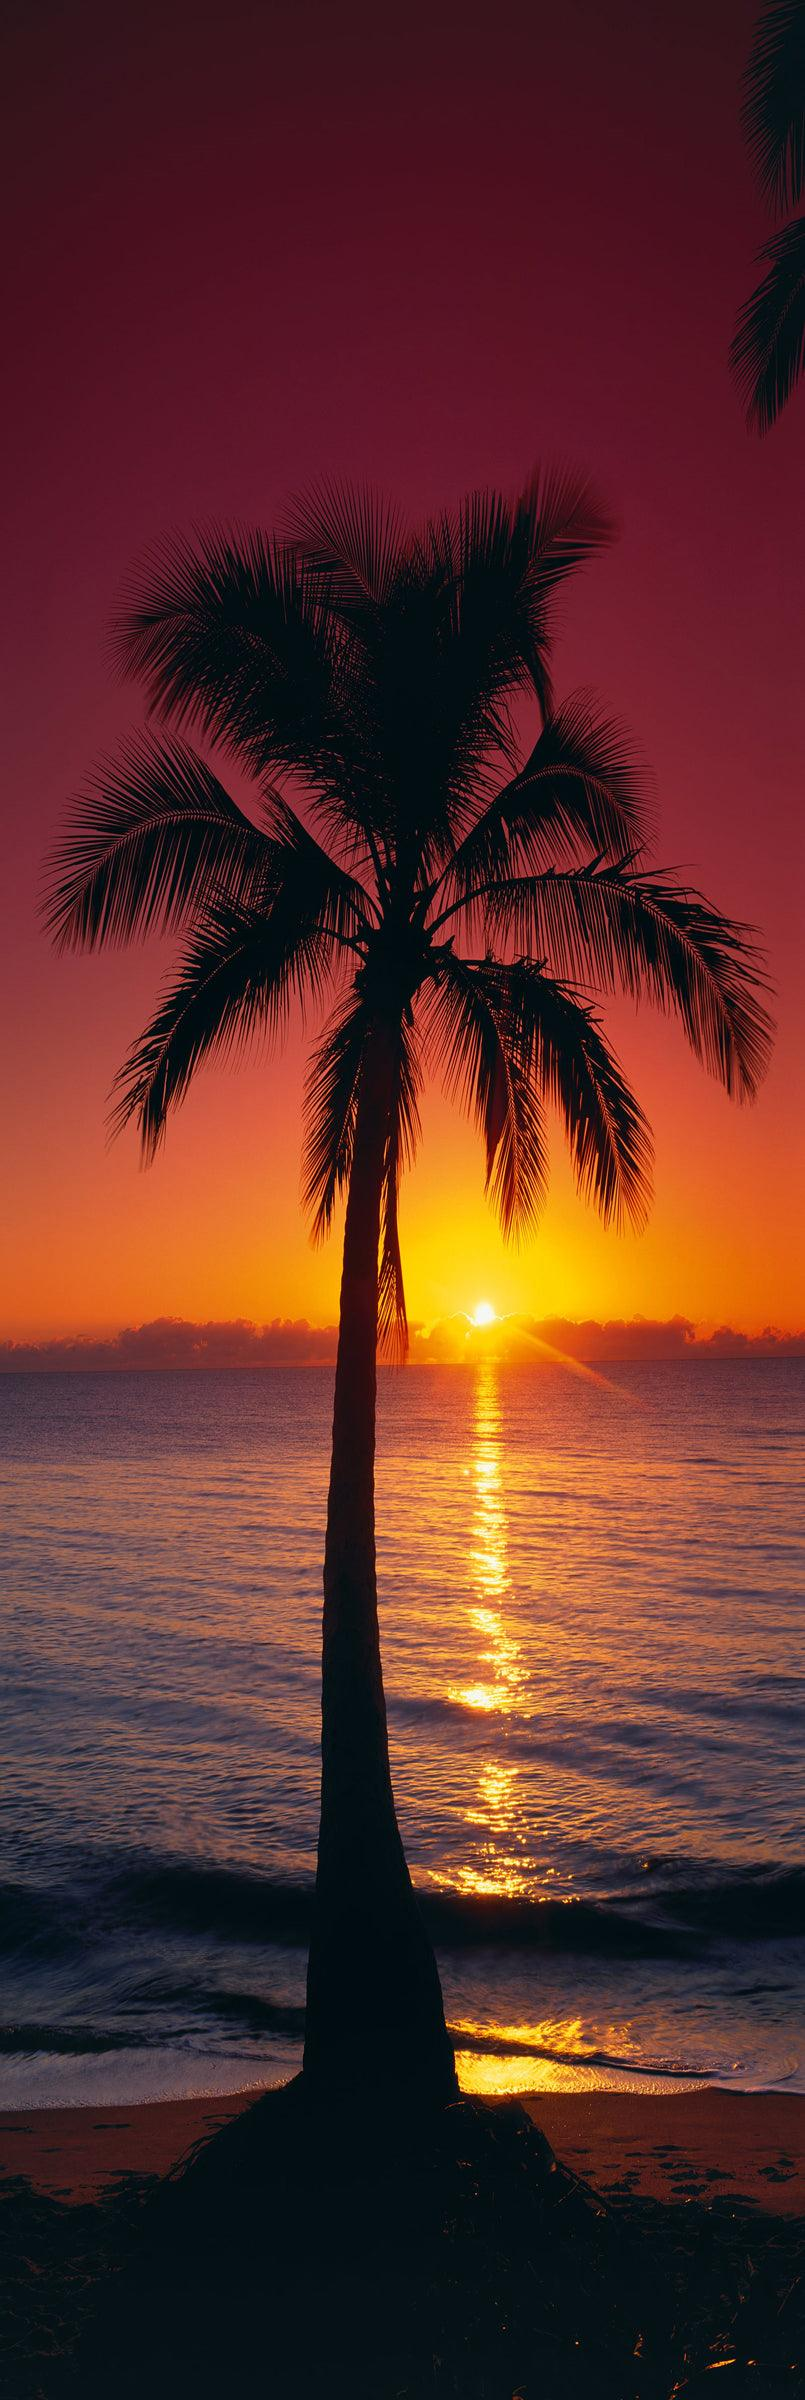 Palm tree on a Cairns beach silhouetted against the sun rising from the low clouds on the ocean horizon